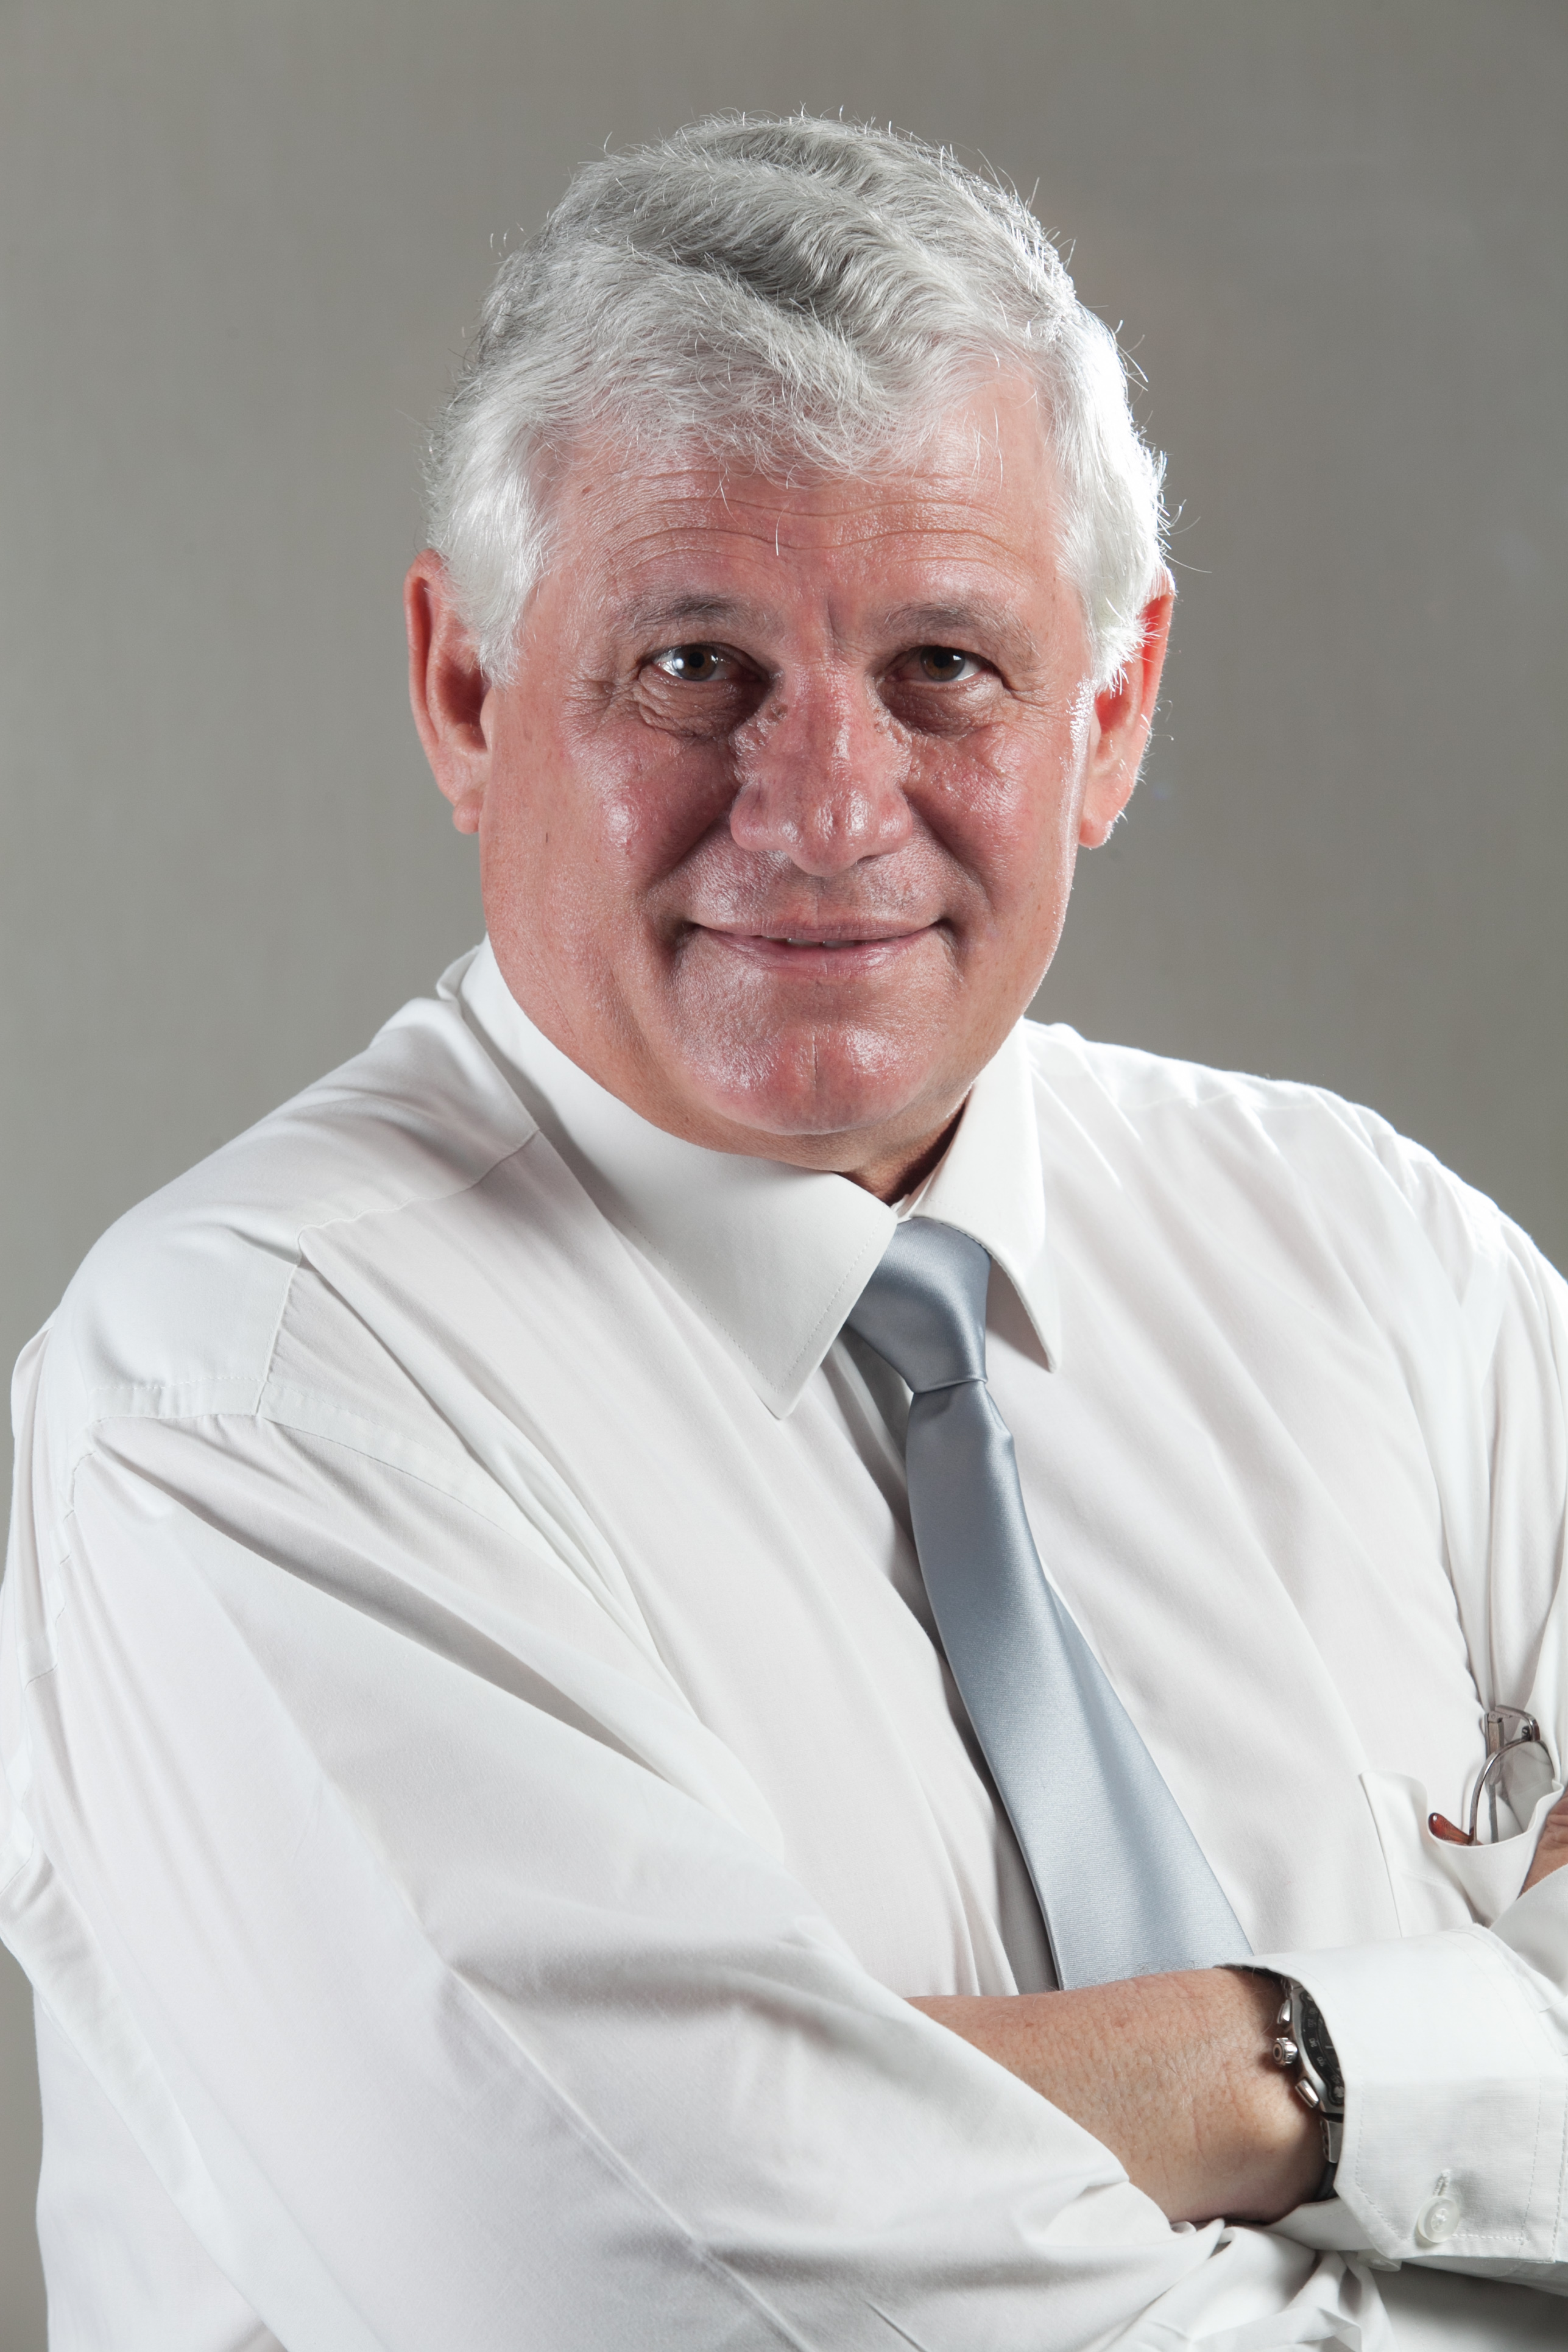 Jacques Laubscher is a professional civil engineer with 38 years' experience, specialising in the design and project management of large urban and rural regional water supply and sanitation schemes. He also has extensive Business Development expertise within the South African and African Water and Sanitation environment.